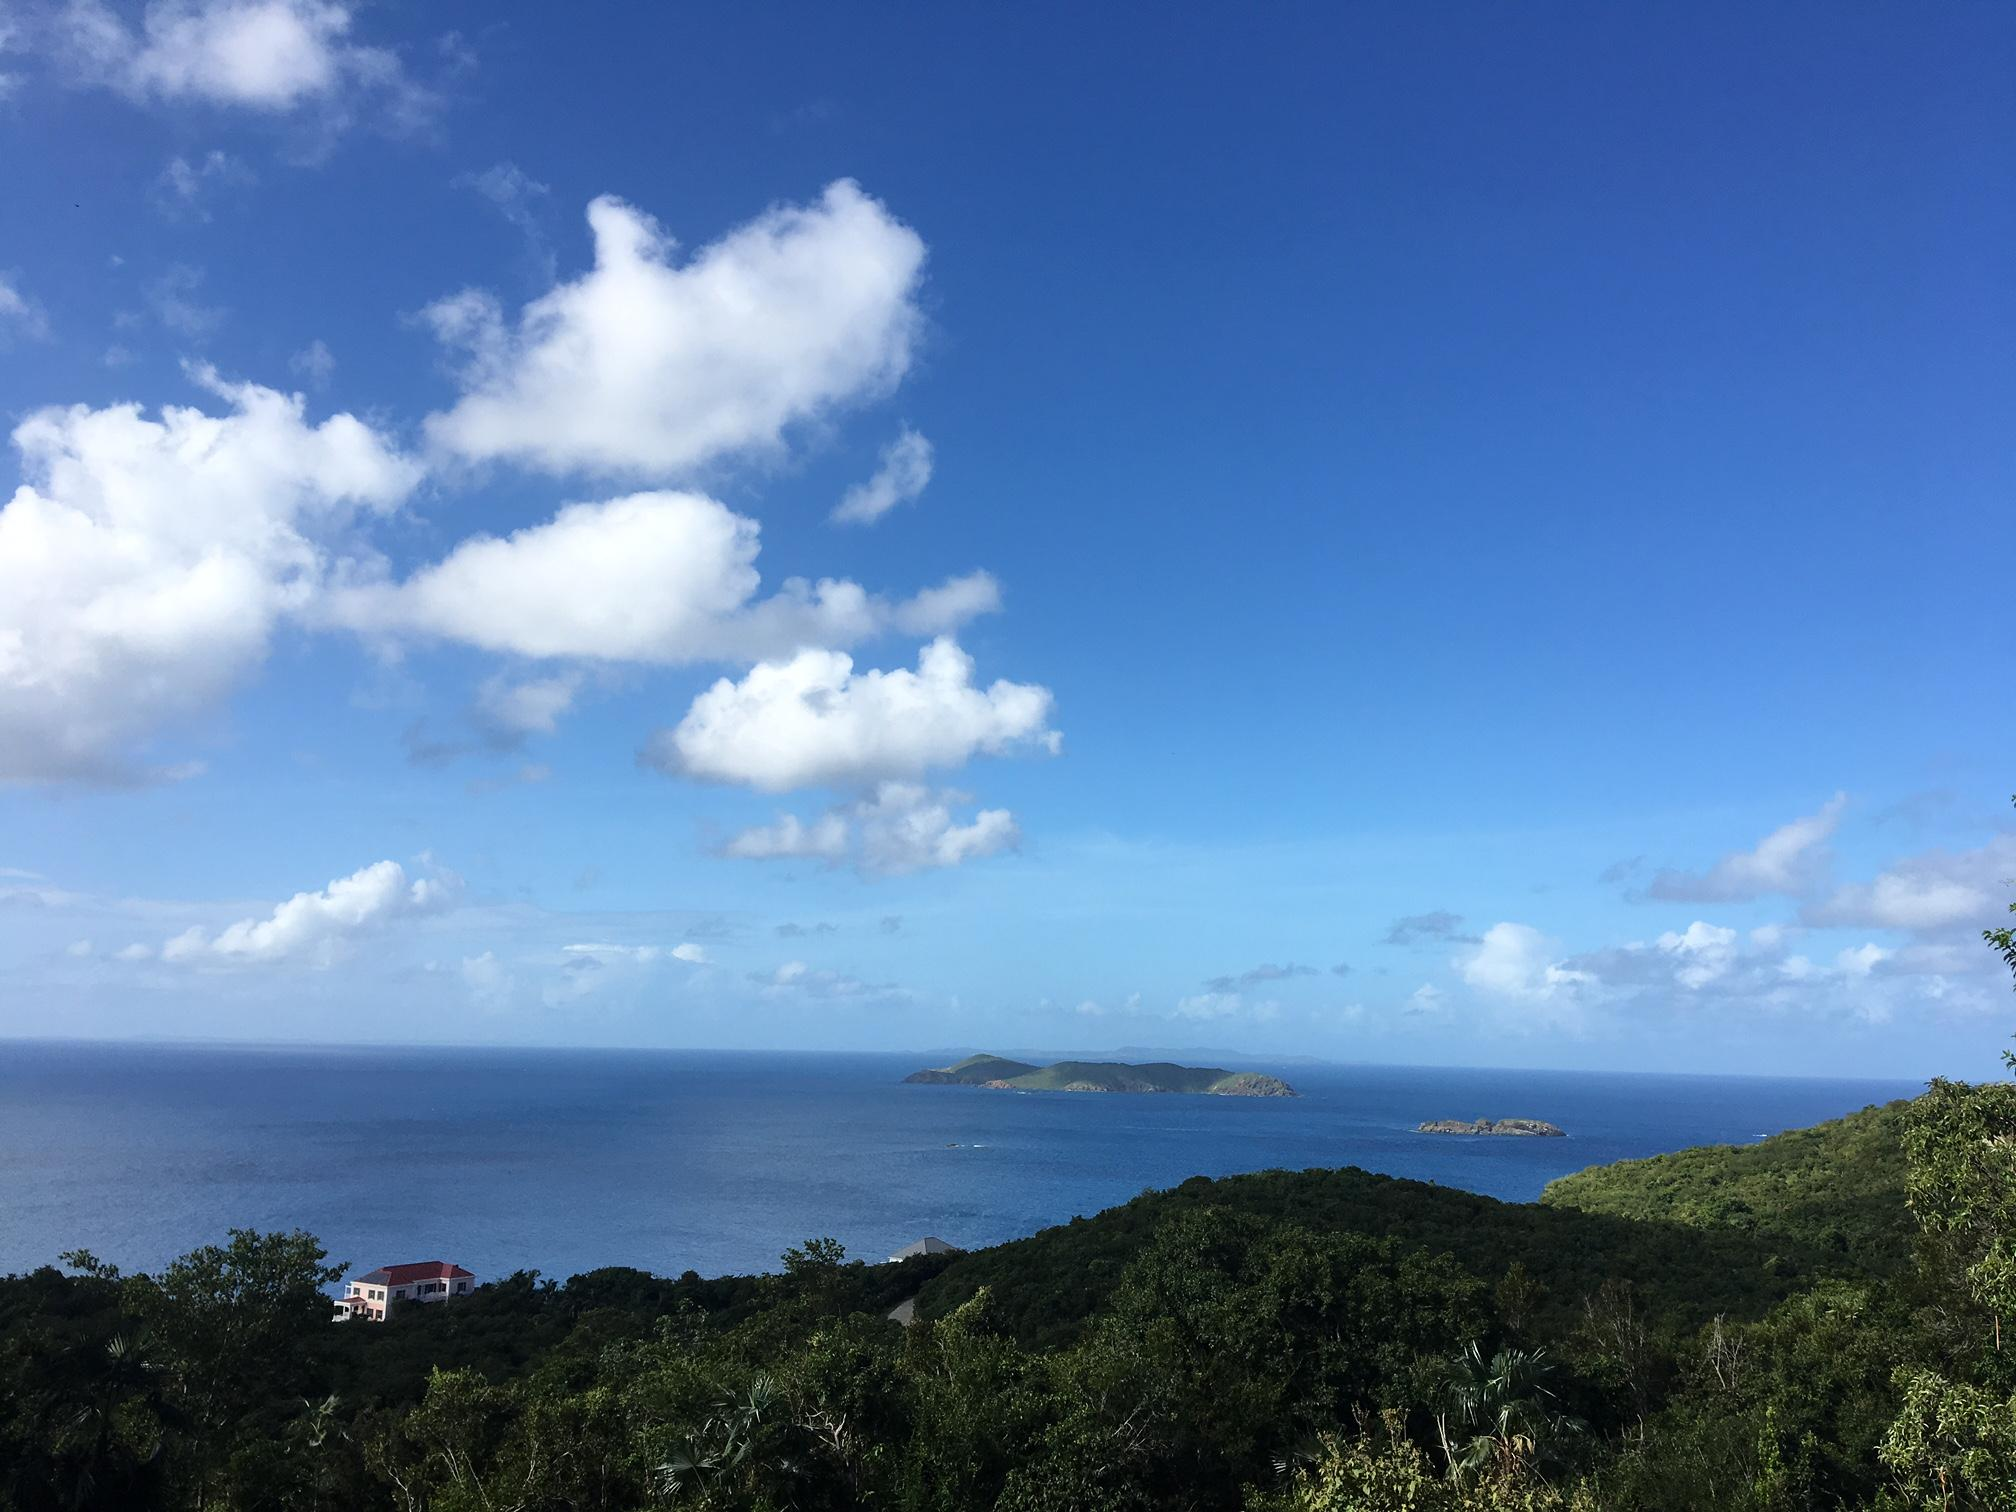 Land for Sale at 6-1 Botany Bay WE 6-1 Botany Bay WE St Thomas, Virgin Islands 00802 United States Virgin Islands